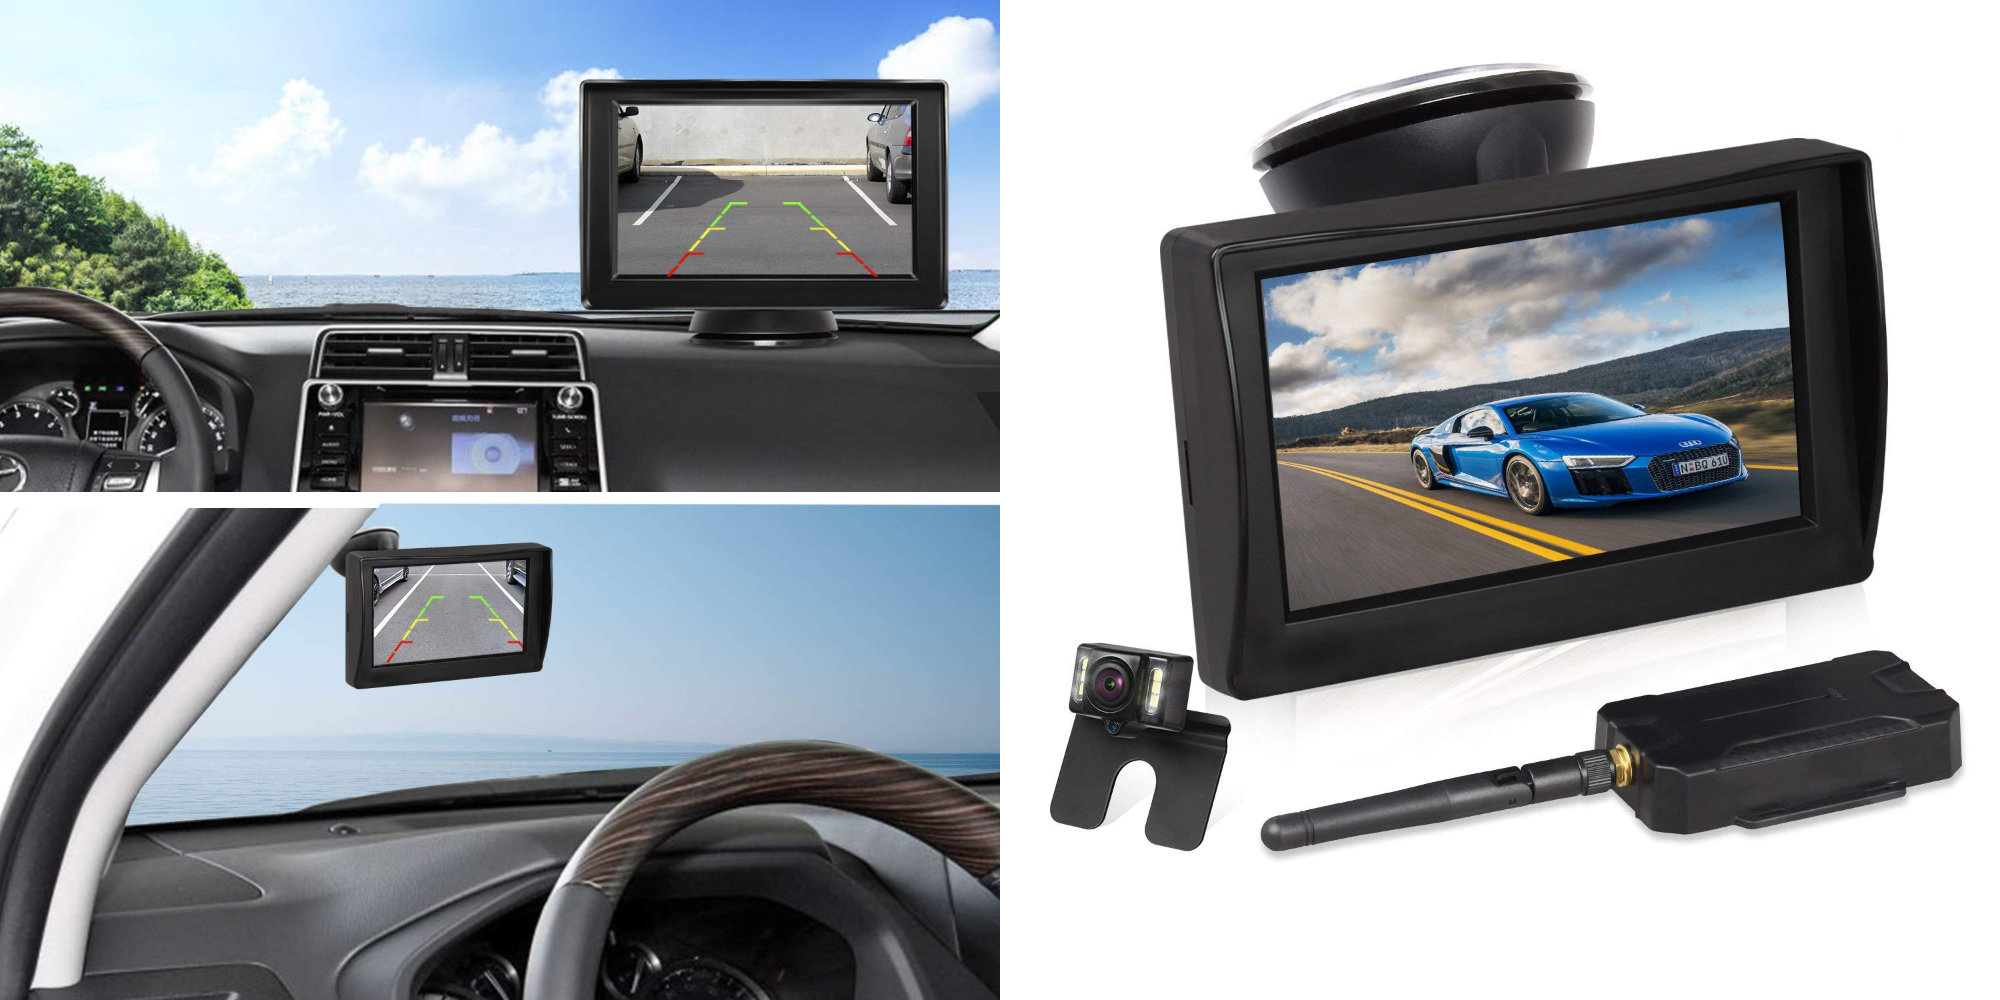 This Wireless Backup Camera Kit installs quickly and sports night vision: $71.50 (Reg. $110)